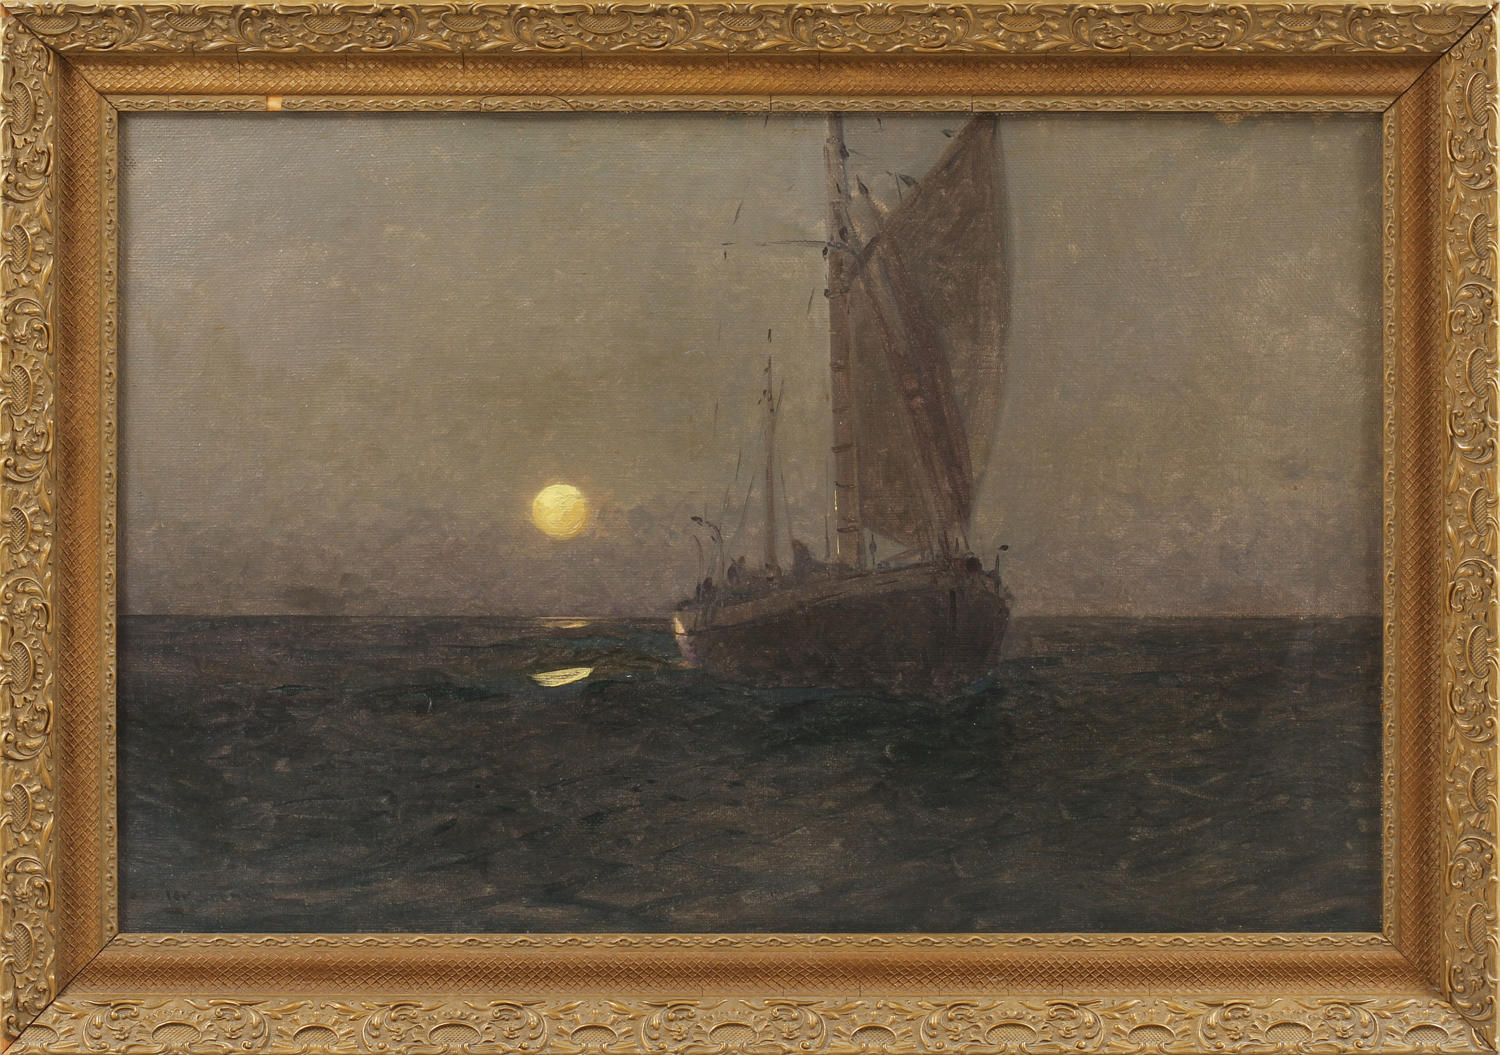 Moon lit boat at sea, oil on canvas